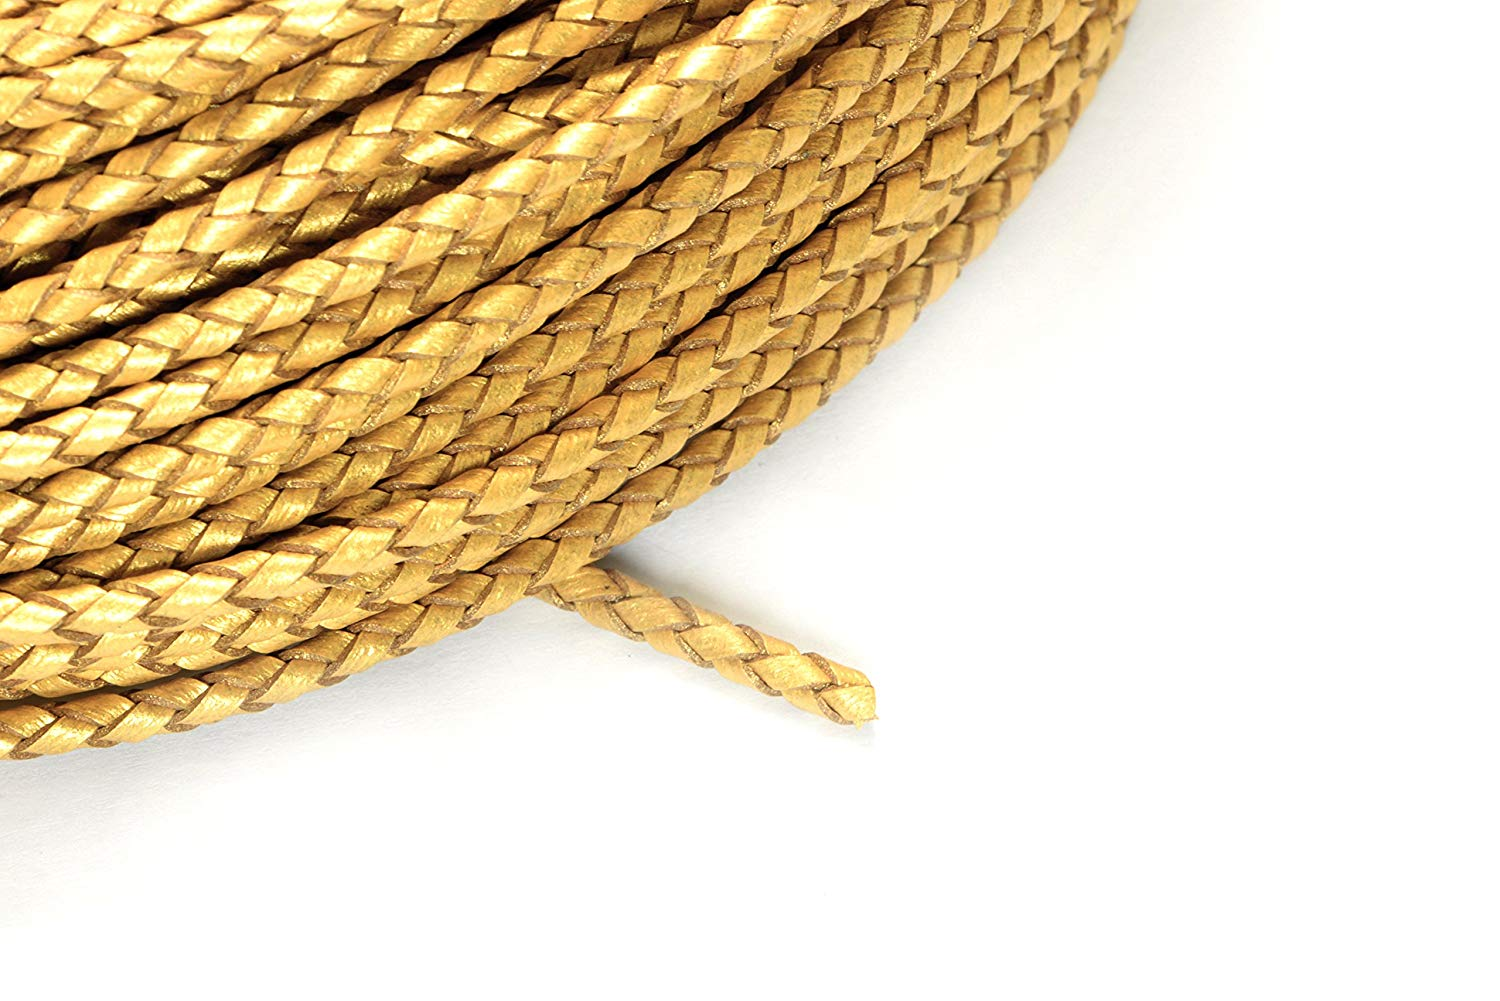 8ft (2.43m) (2.66 yards) 3mm Braided Leather Bolo Cord in Metallic Gold, Round Genuine Leather Cord, Twisted Cord #SD-S7794